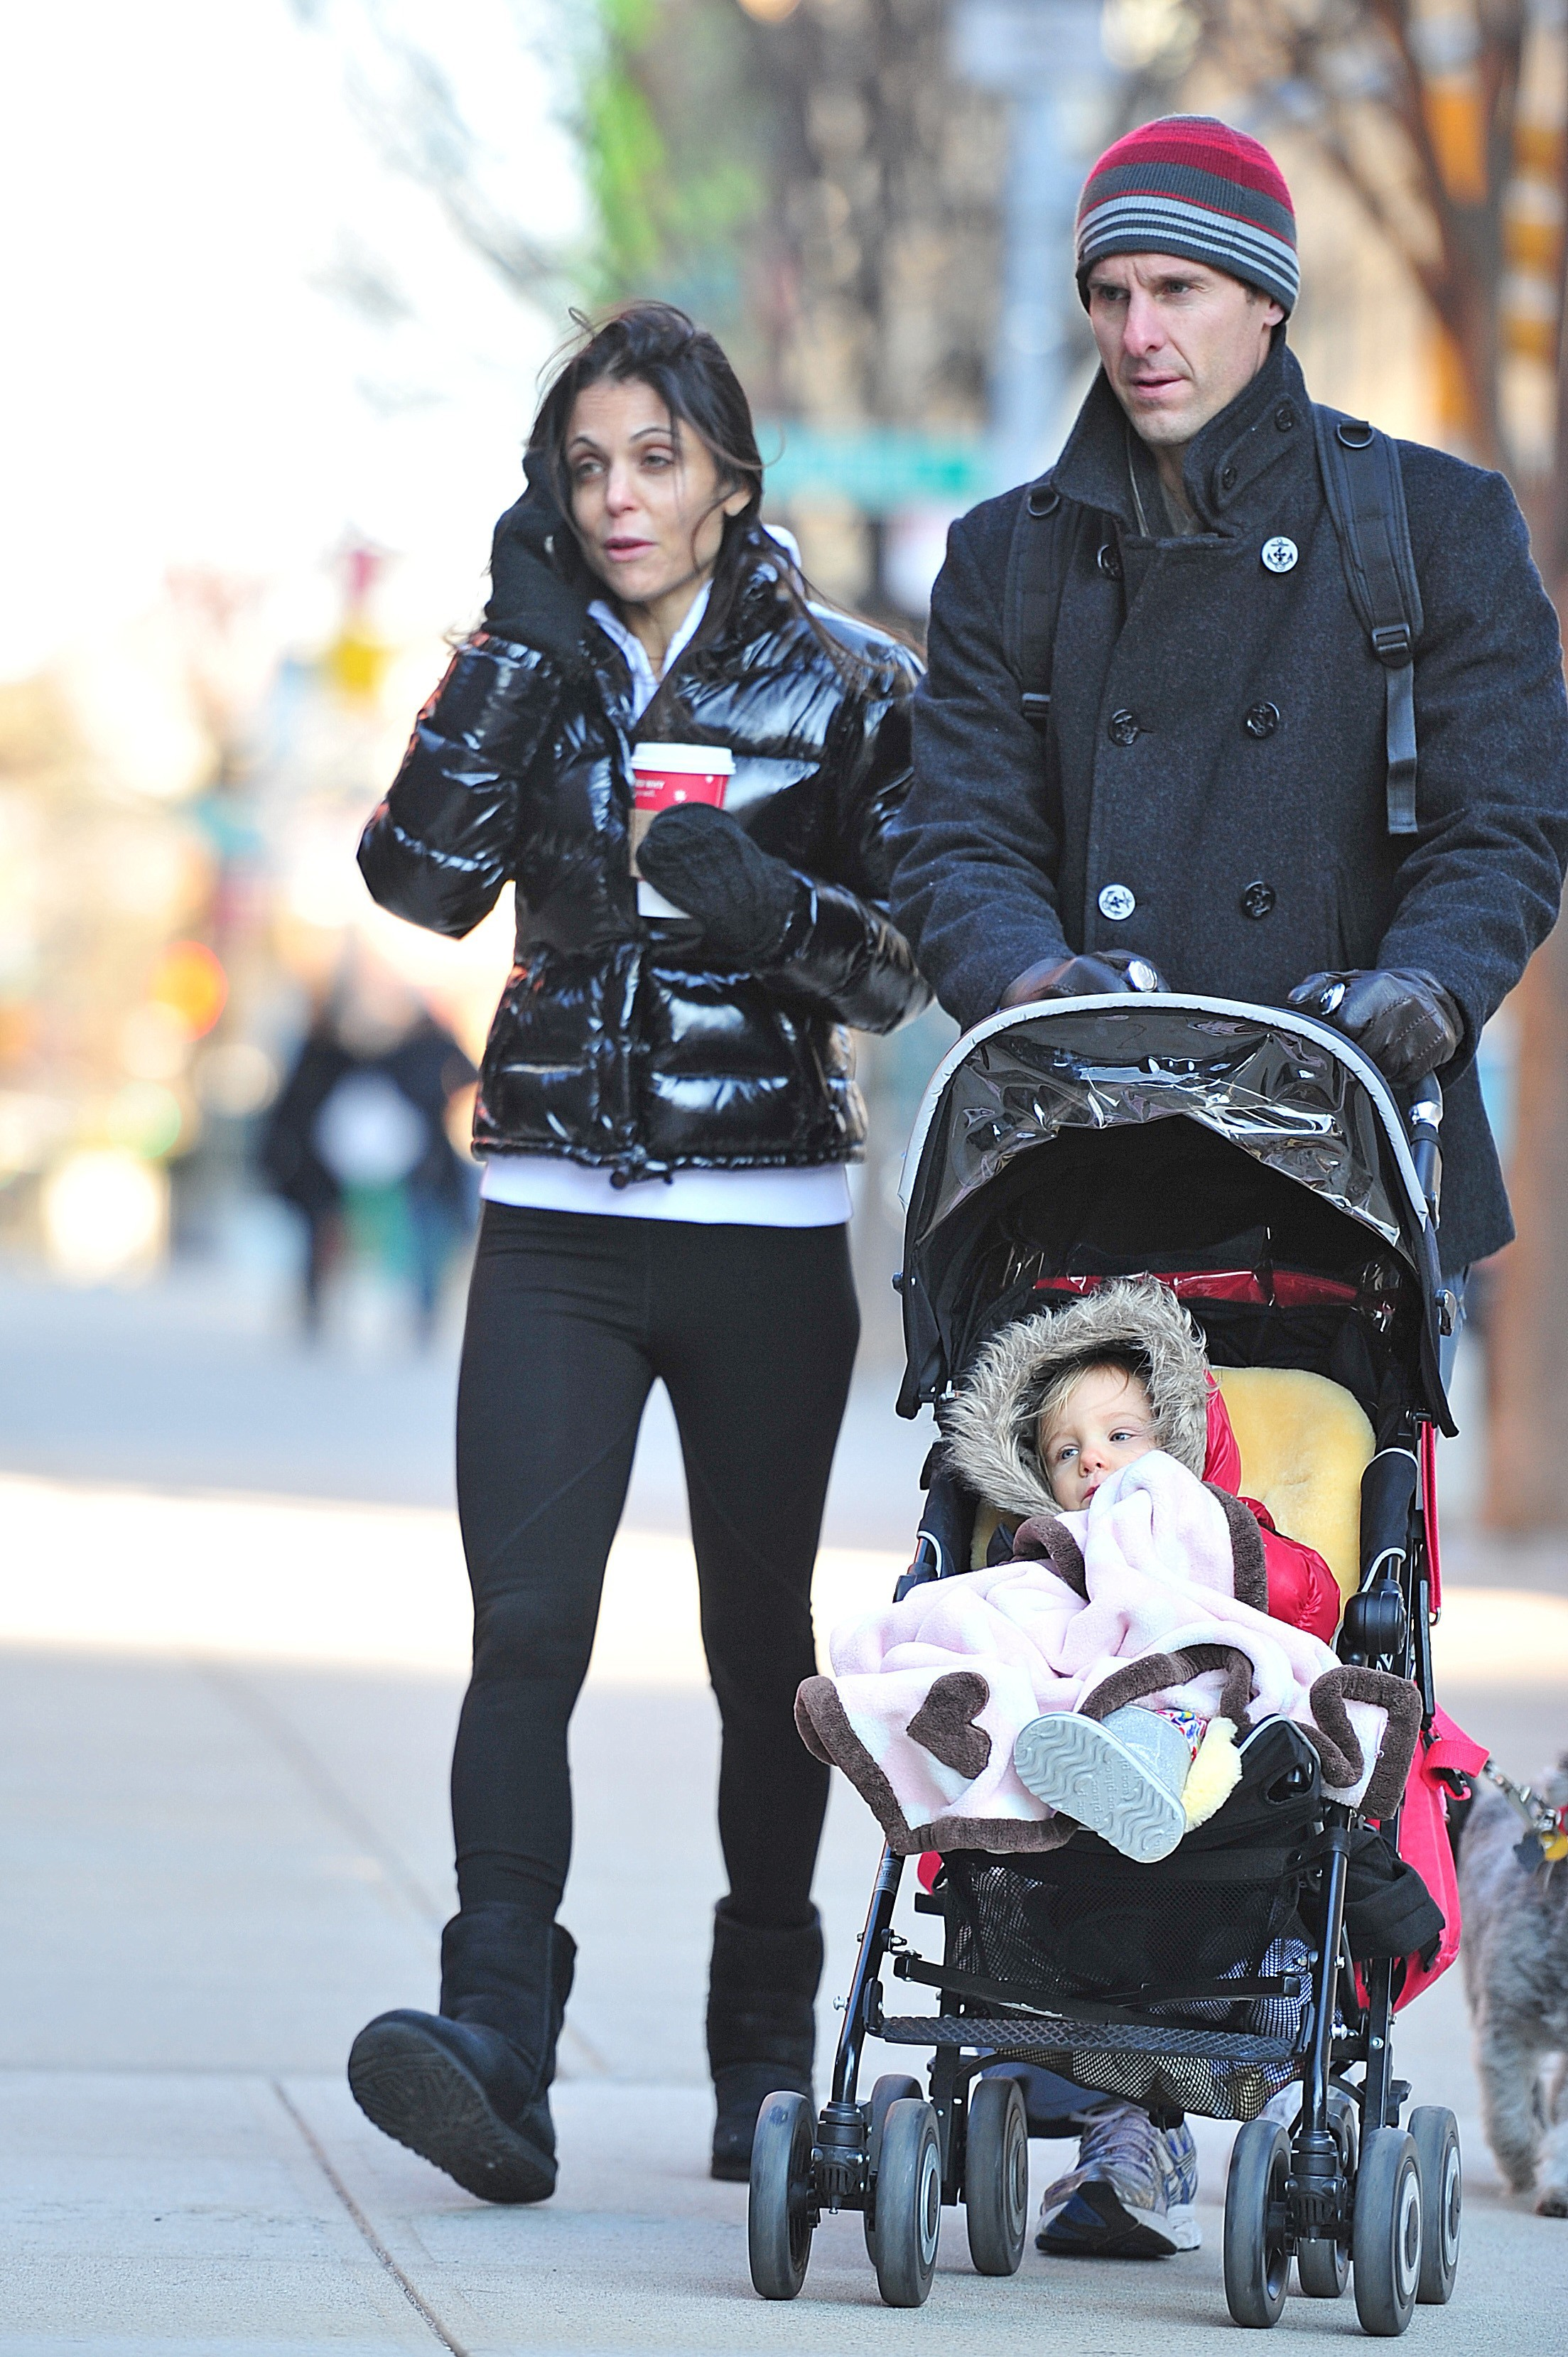 A therapist hired to help Bethenny Frankel, Jason Hoppy coparent amicably quite after a year